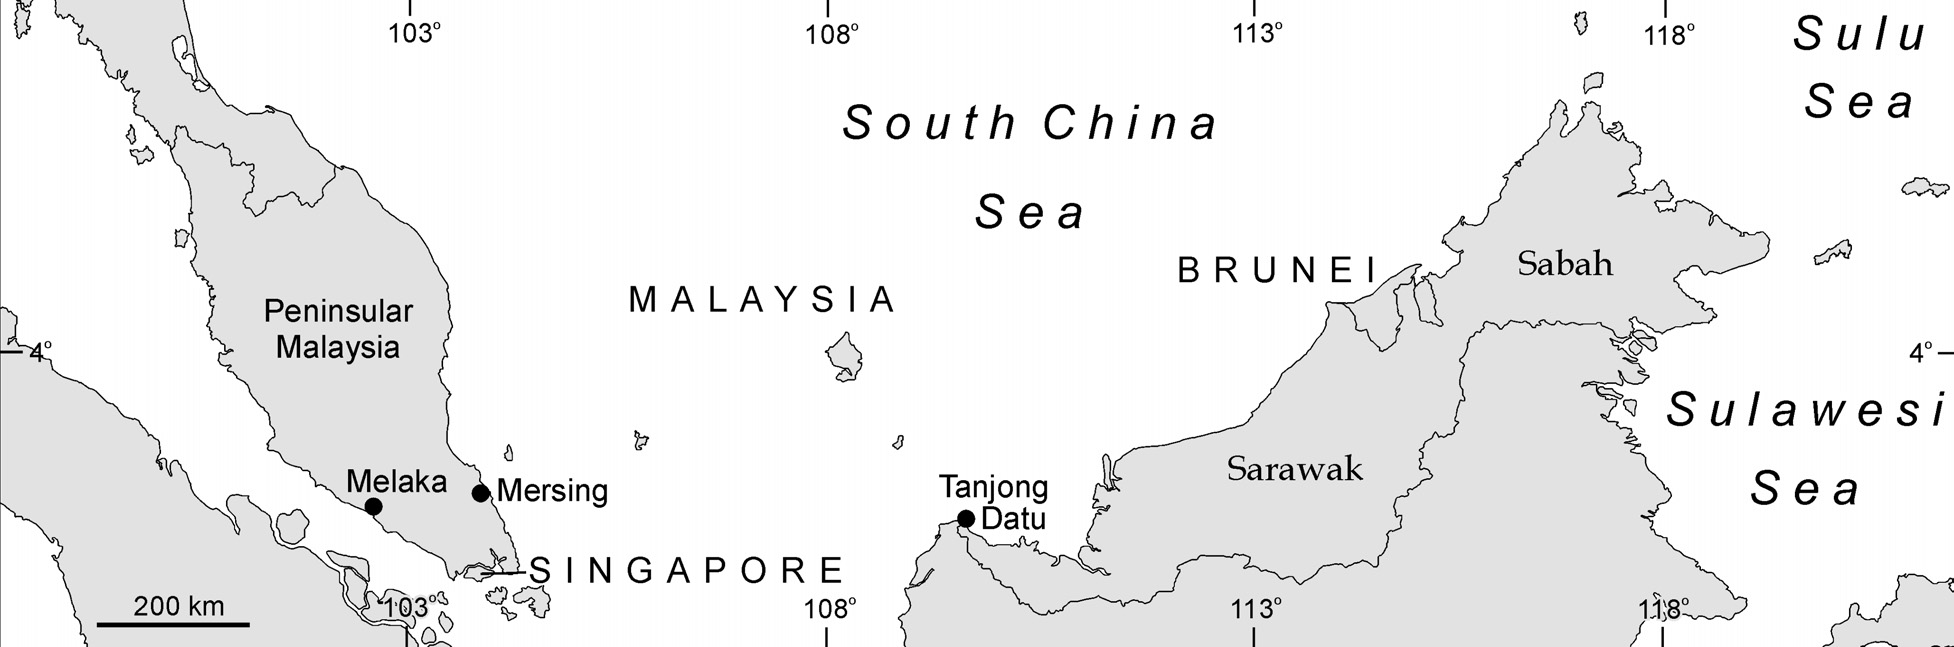 Figure 4.5 Malaysia, Singapore and Brunei showing place names mentioned in the text. occurred at Limbang and Lawas Districts to the north (Figure 4.6).